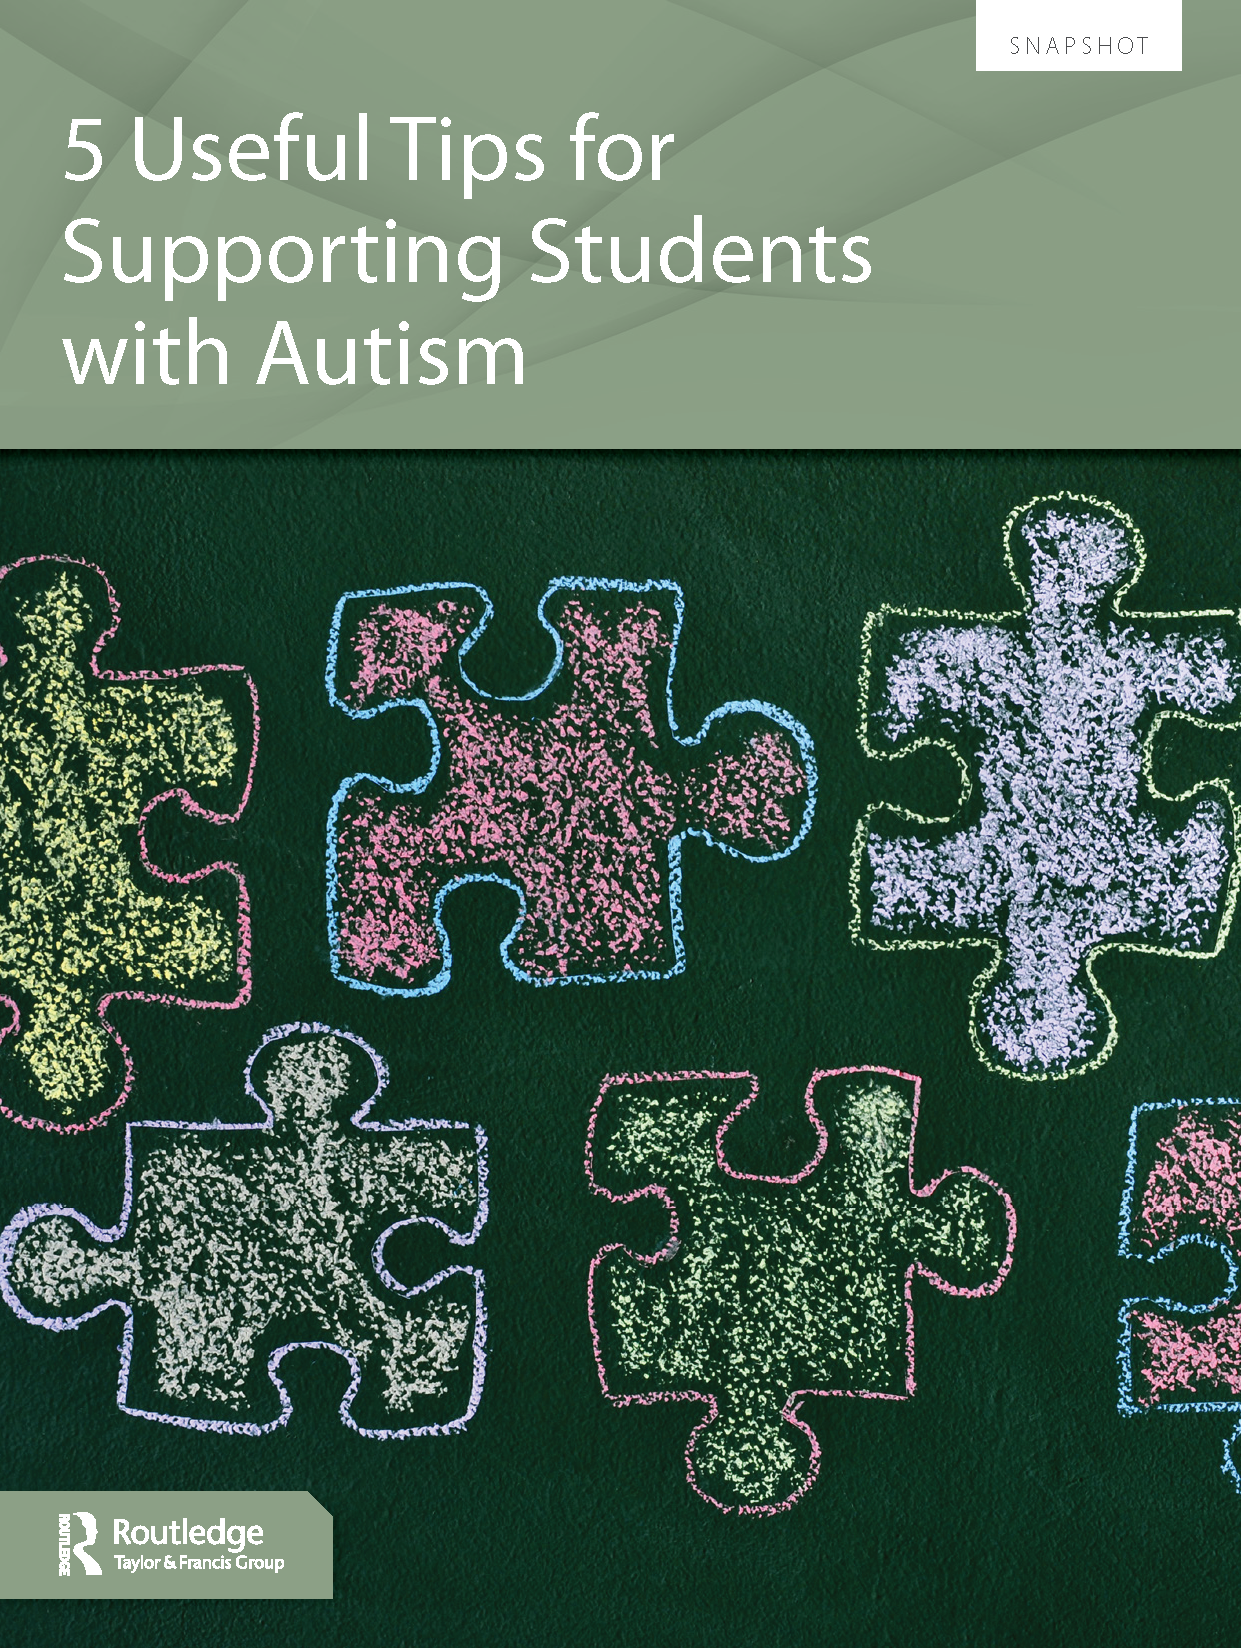 5 Useful Tips for Supporting Students with Autism